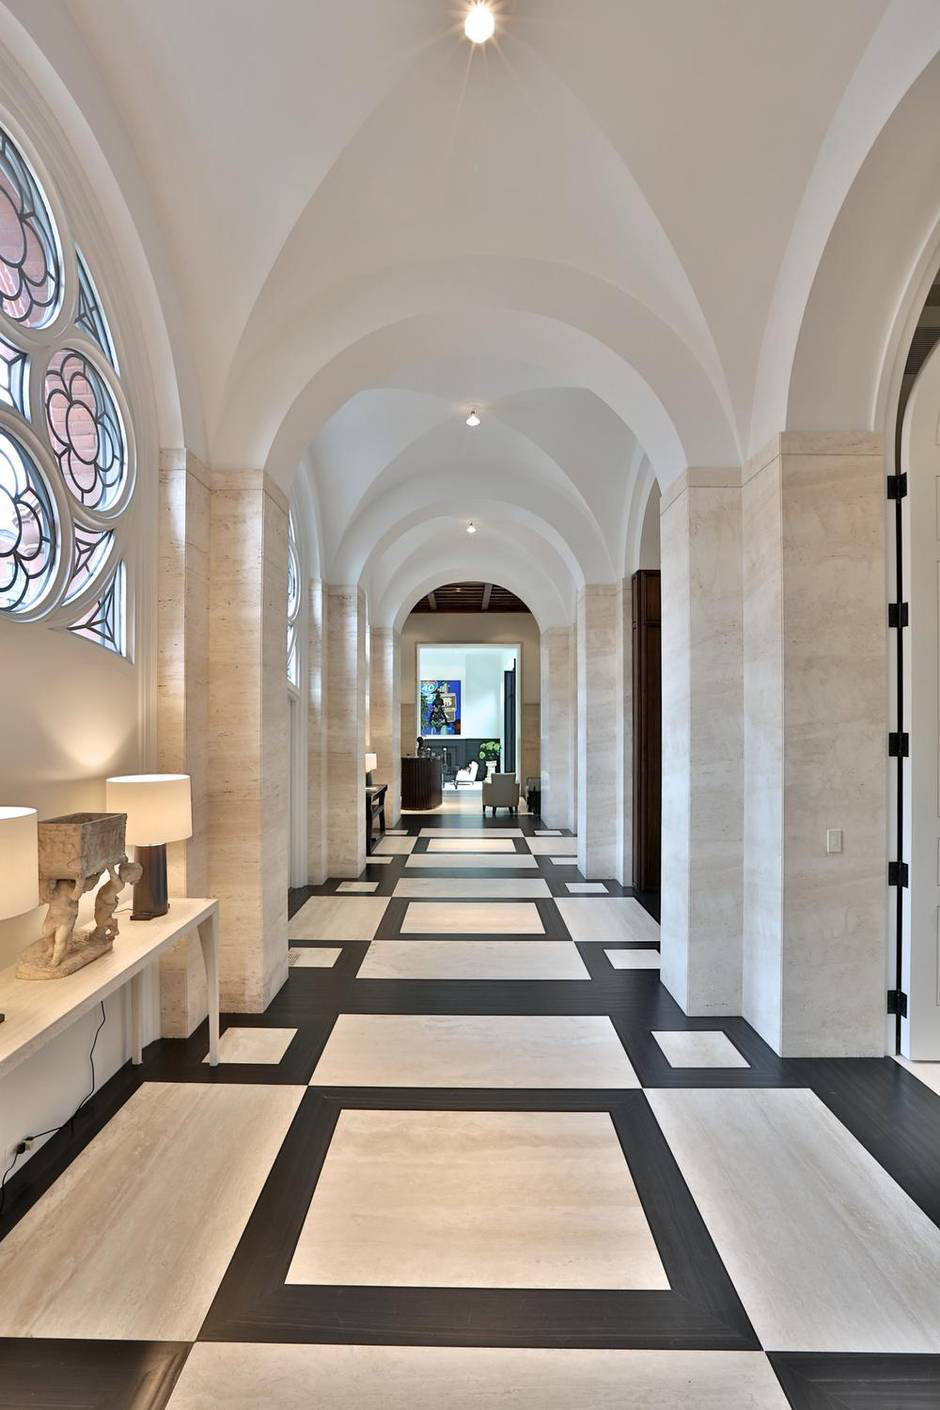 Romanesque Revival Style Former Church Converted Into